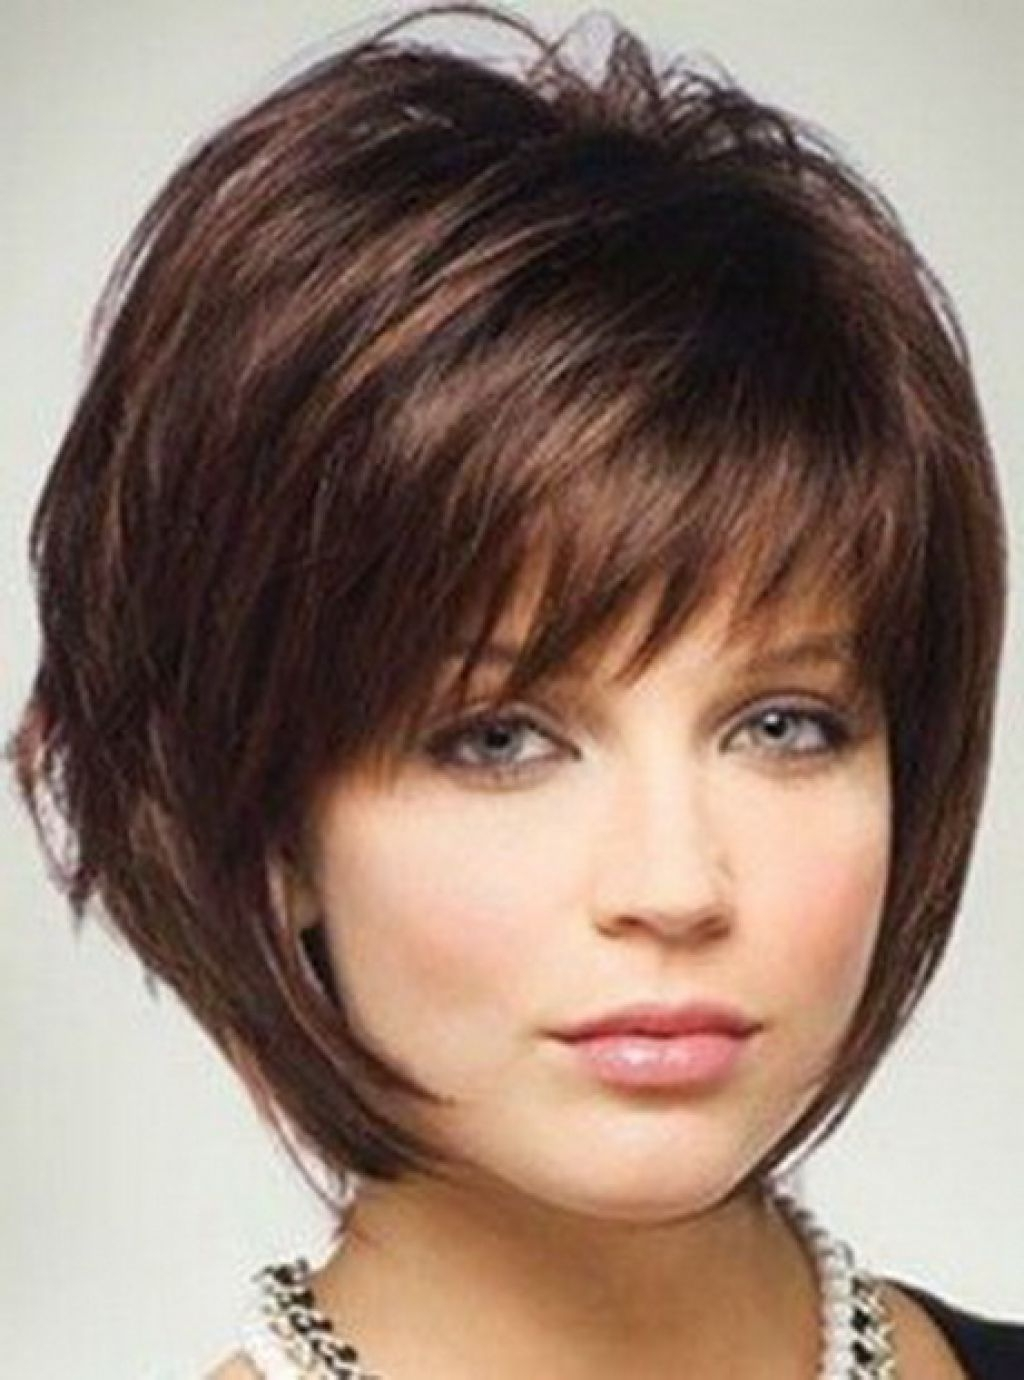 2018 Shaggy Hairstyles For Short Hair For Short And Shaggy Hairstyles – Hairstyle For Women & Man (View 2 of 15)